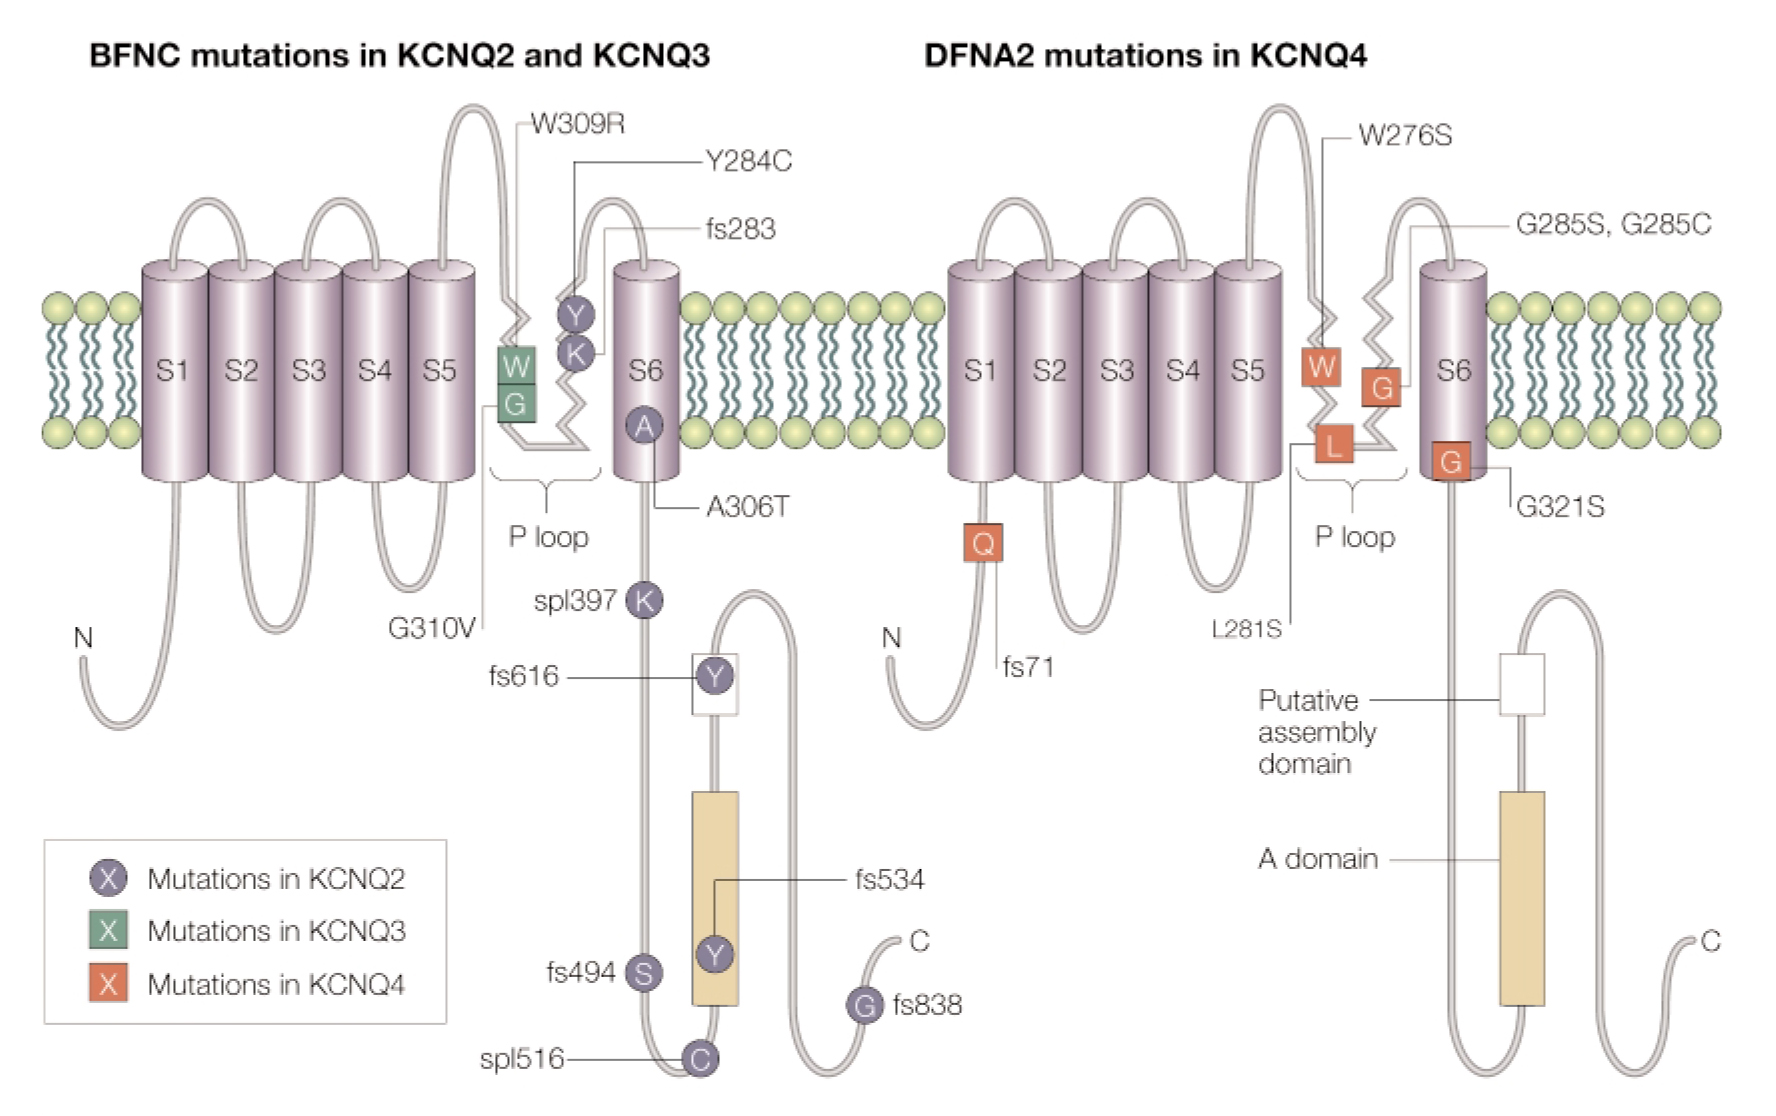 Jentsch_2000_NEURONAL KCNQ POTASSIUM CHANNELS PHYSIOLGY AND ROLE IN DISEASE_pg.jpg